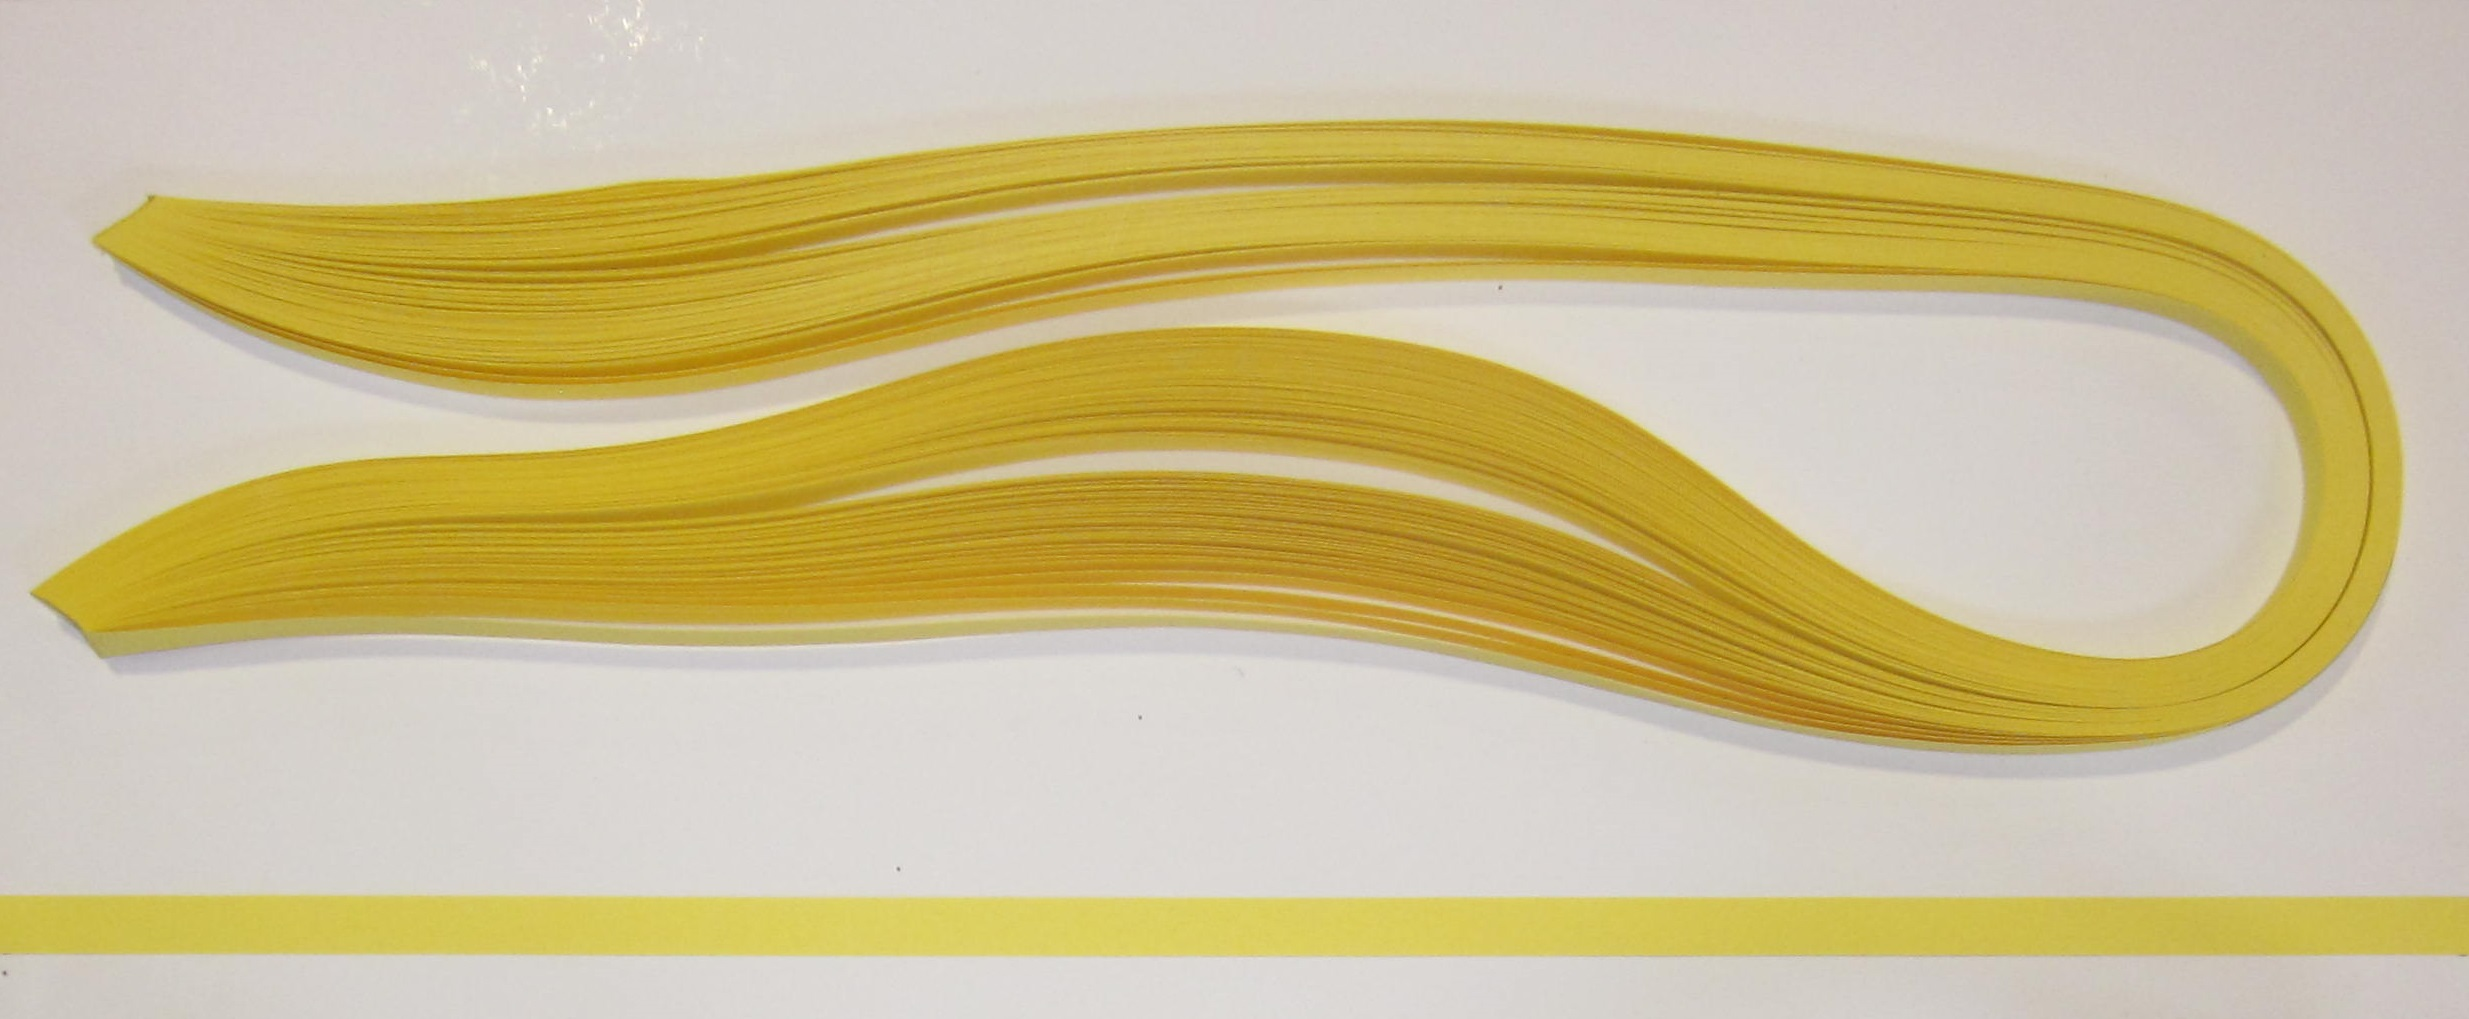 PAPEL QUILLING 315, 6MM. AMARILLO ORO